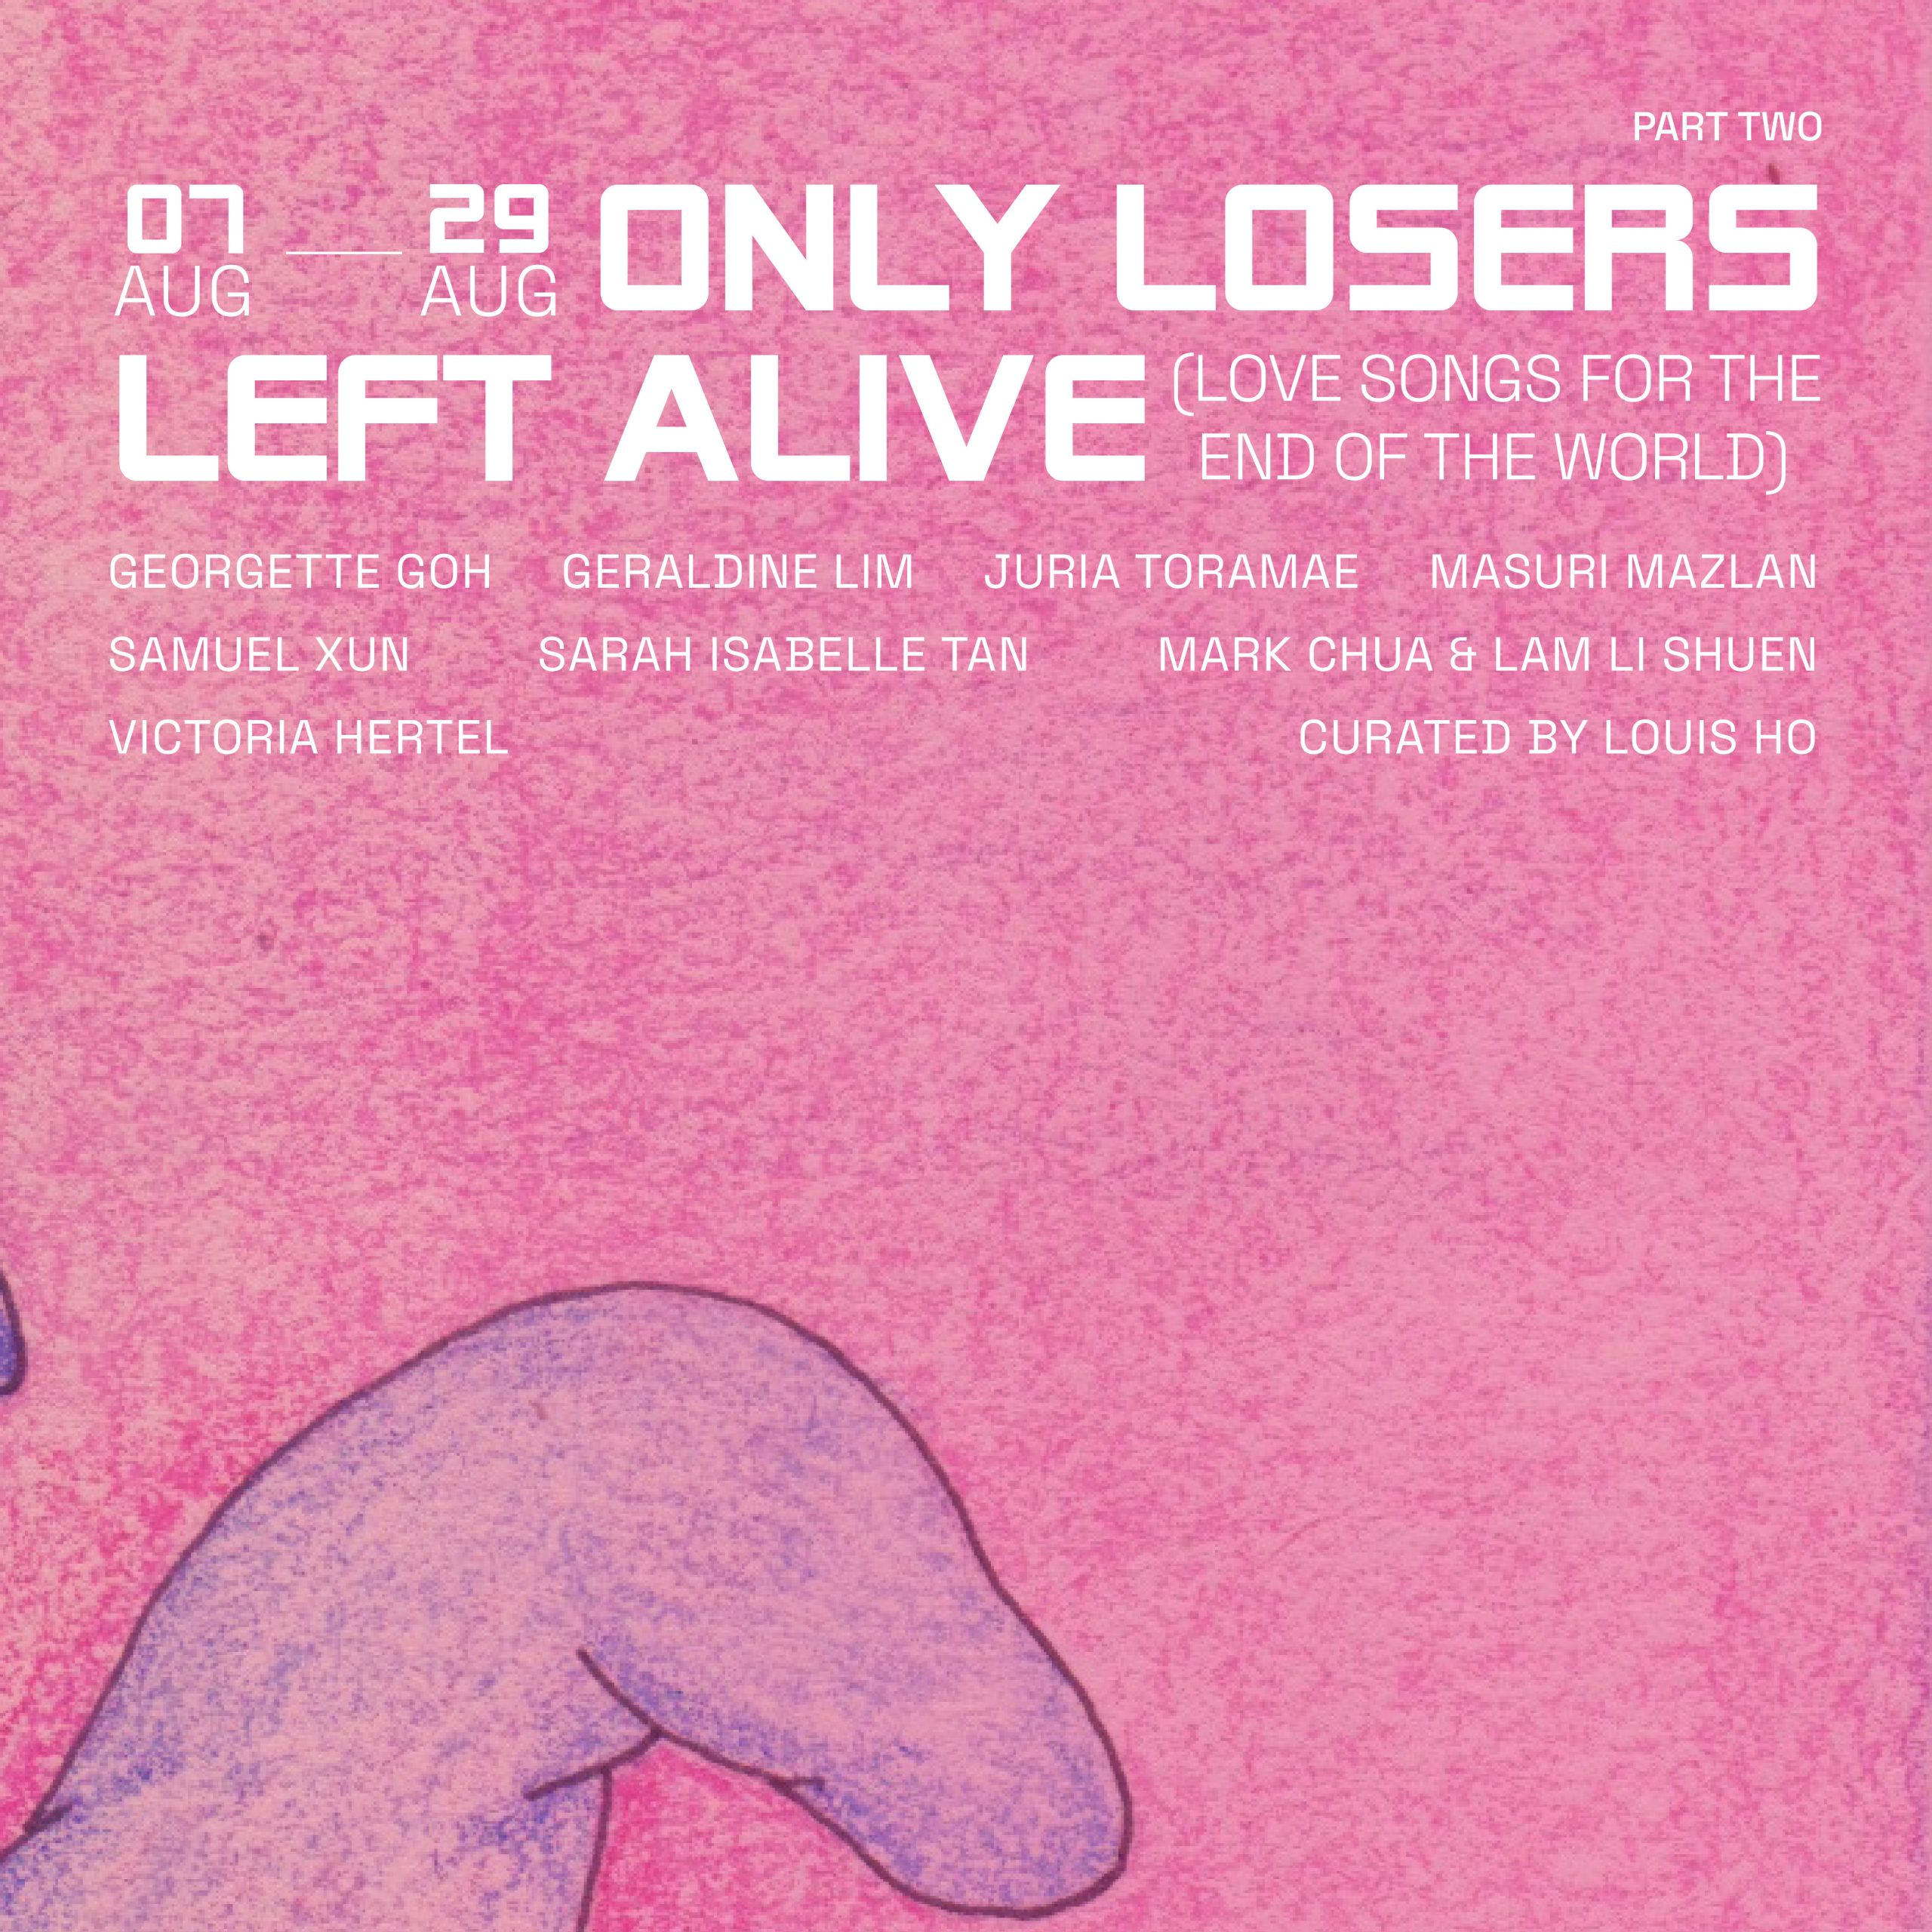 only losers left alive (love songs for the end of the world) – Part 2